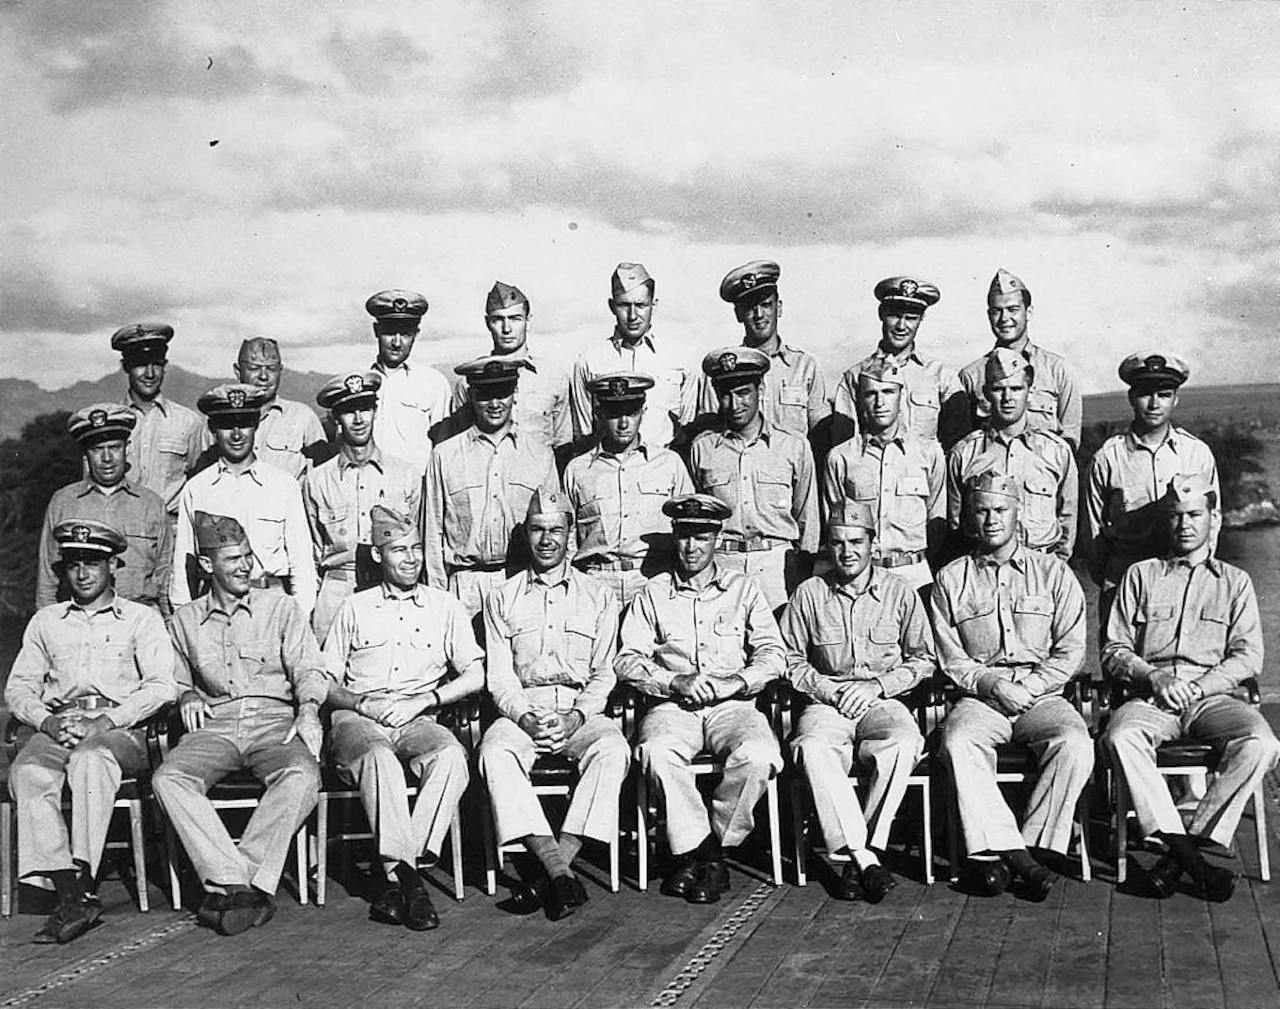 Navy officers pose for a group photo.